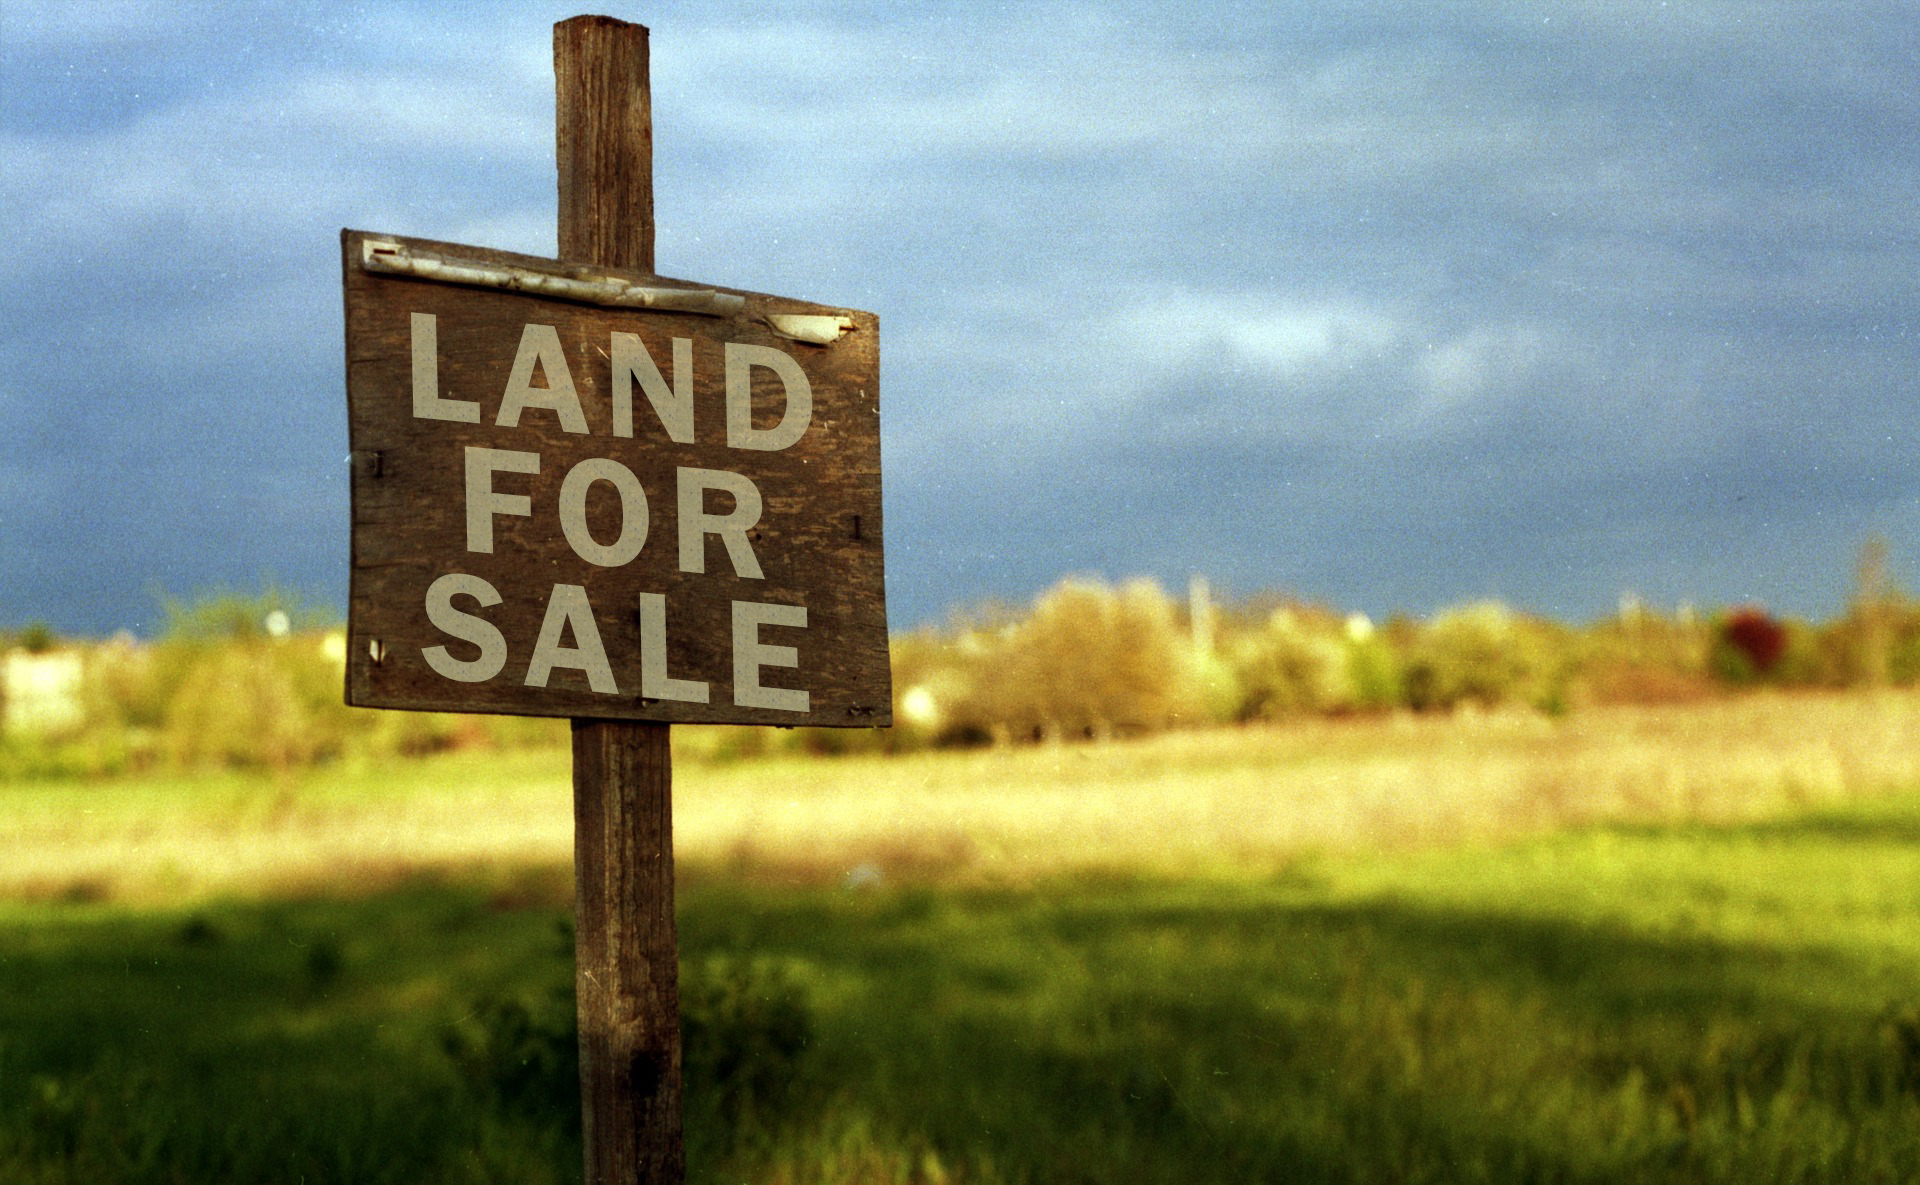 Land   includes vacant land, working farms and ranches. The subcategories within vacant land include undeveloped, early development or reuse, subdivision and site assembly.